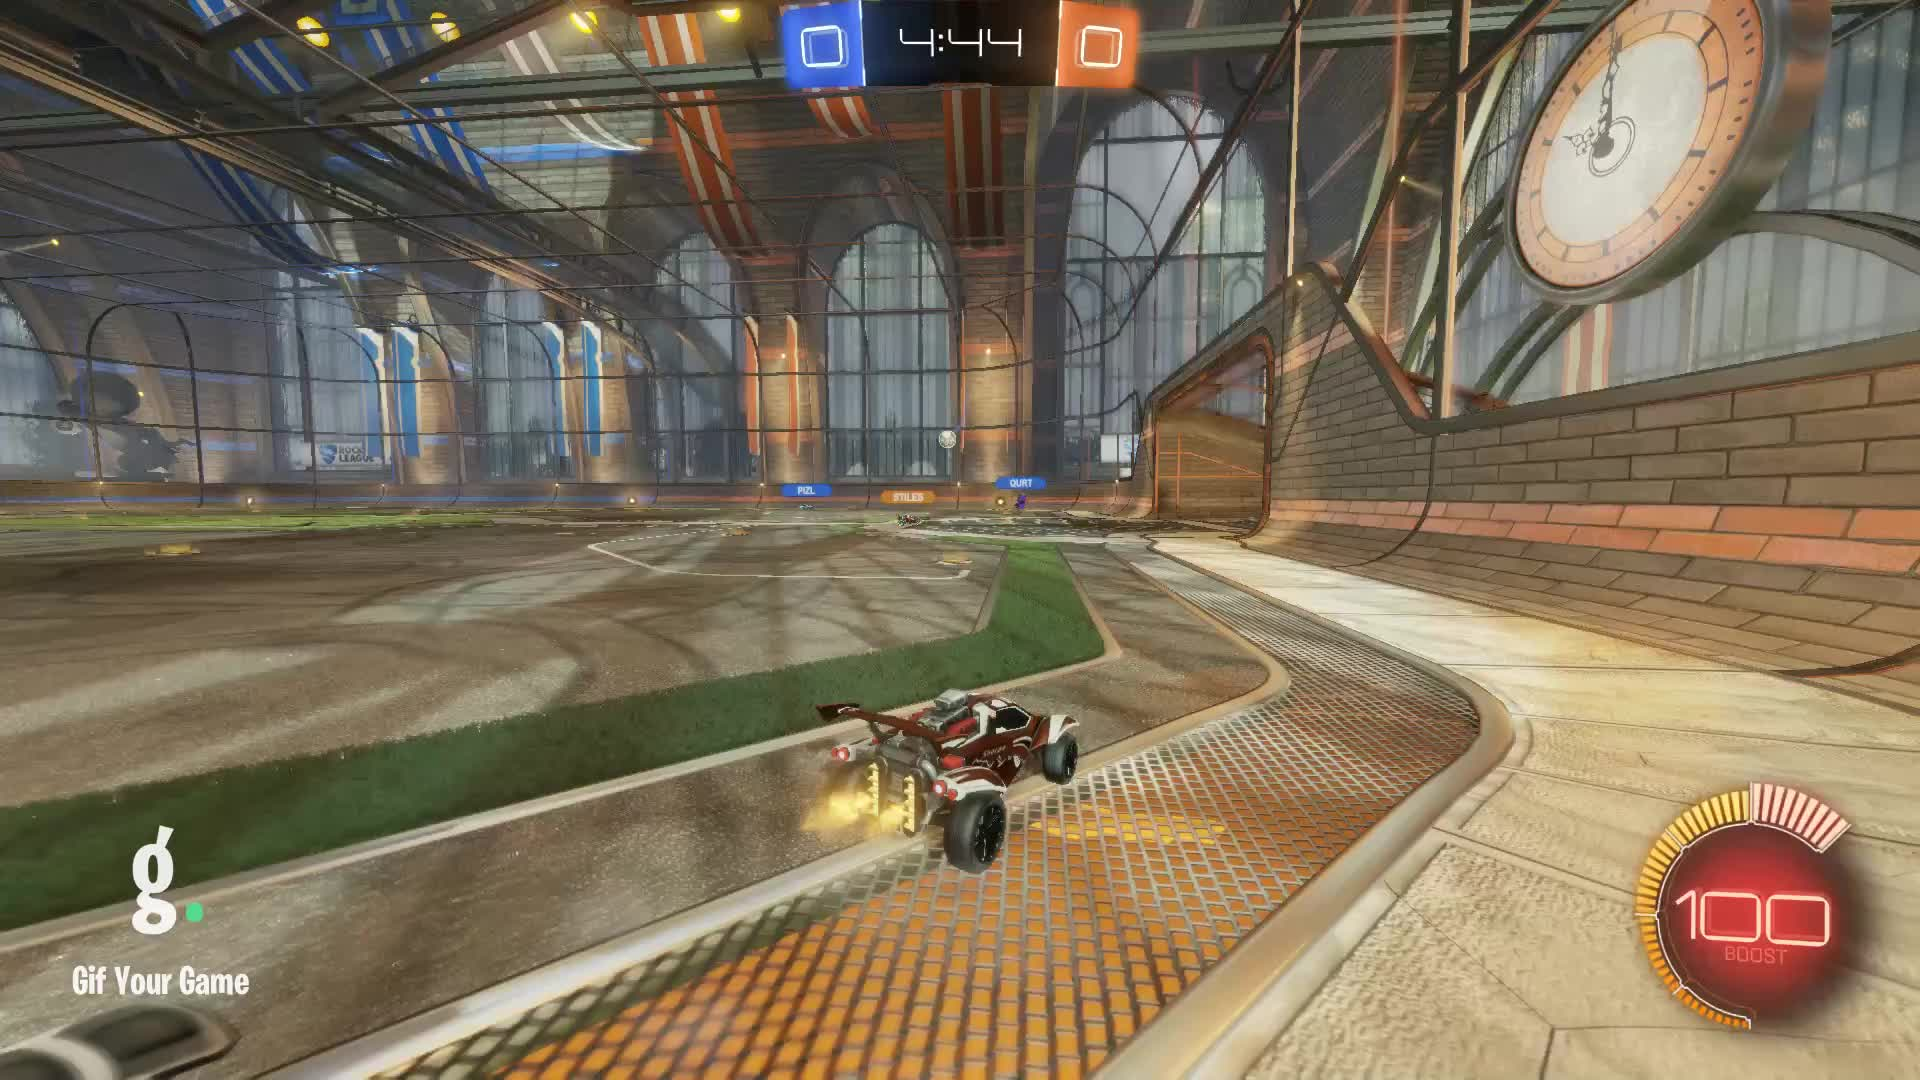 Gif Your Game, GifYourGame, Goal, Rocket League, RocketLeague, Uhhhh, T., Goal 1: Uhhhh, T. GIFs